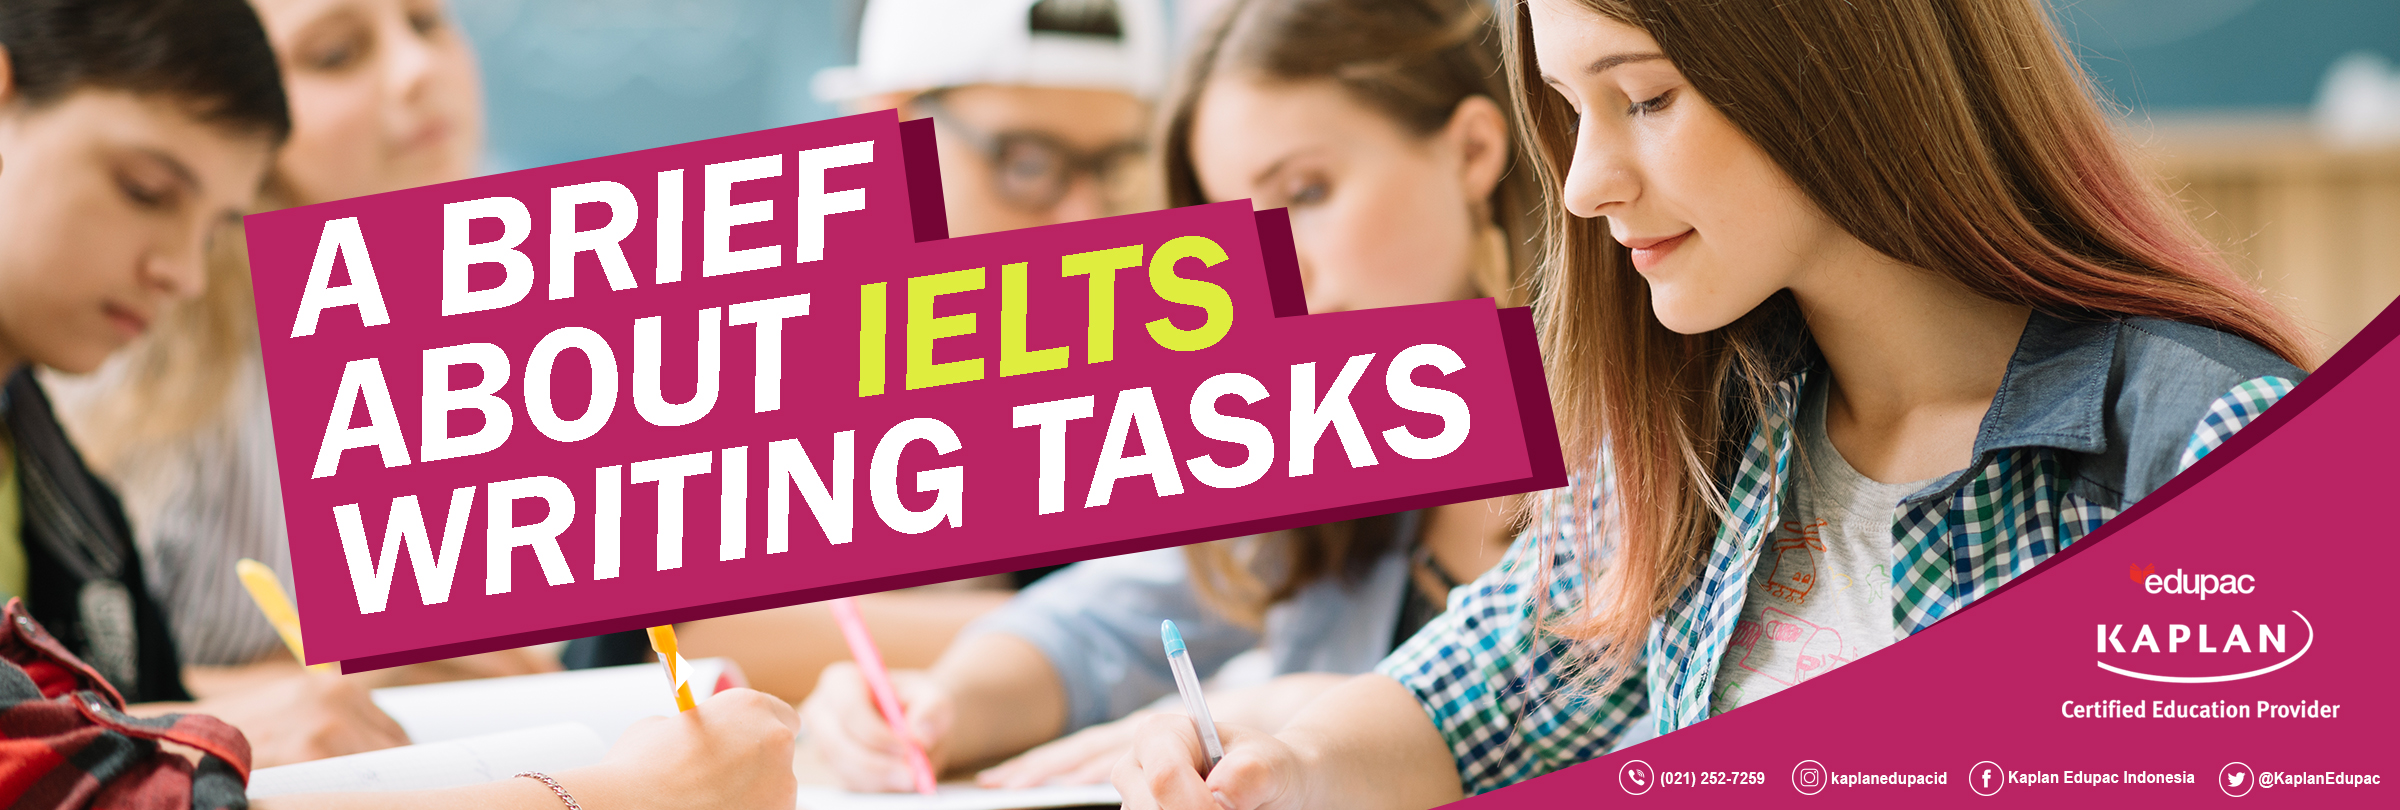 A BRIEF ABOUT IELTS WRITING TASKS